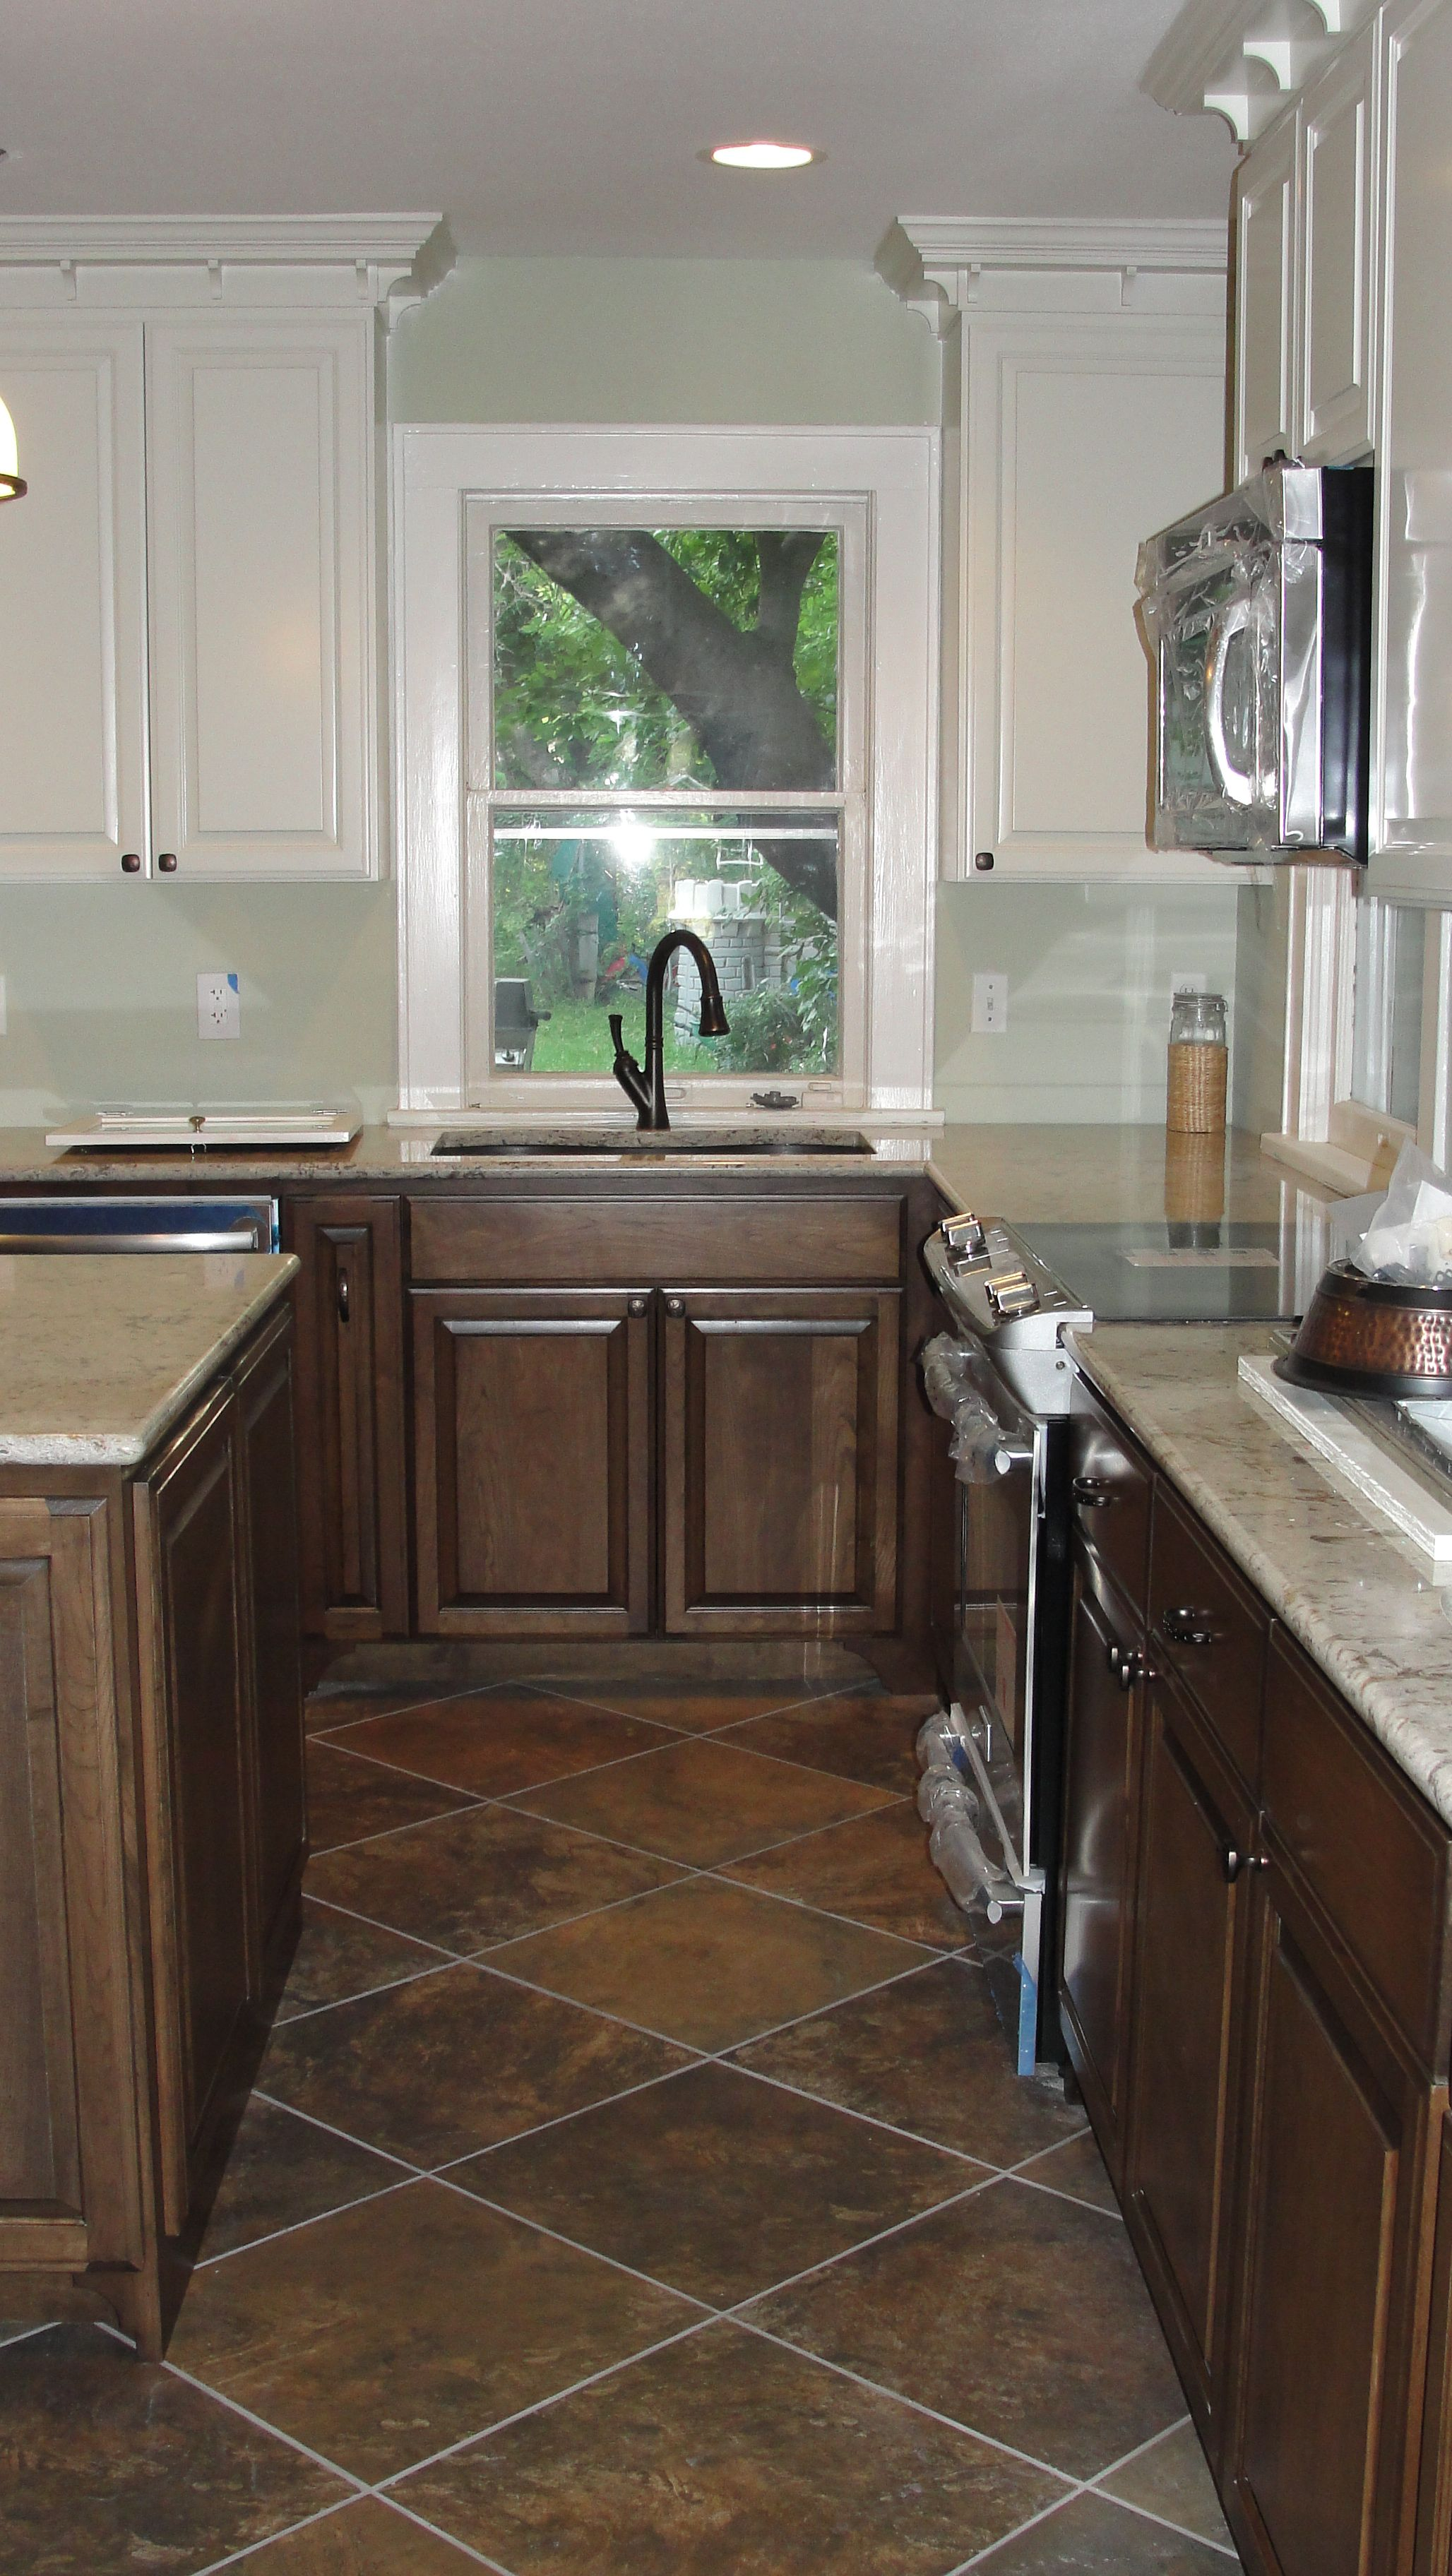 since to we budget bar underneath painted a cabinets same friendly paint the have stools img white corbels breakfast index countertops countertop faith tie wanted our counter in little kitchen on trim recently